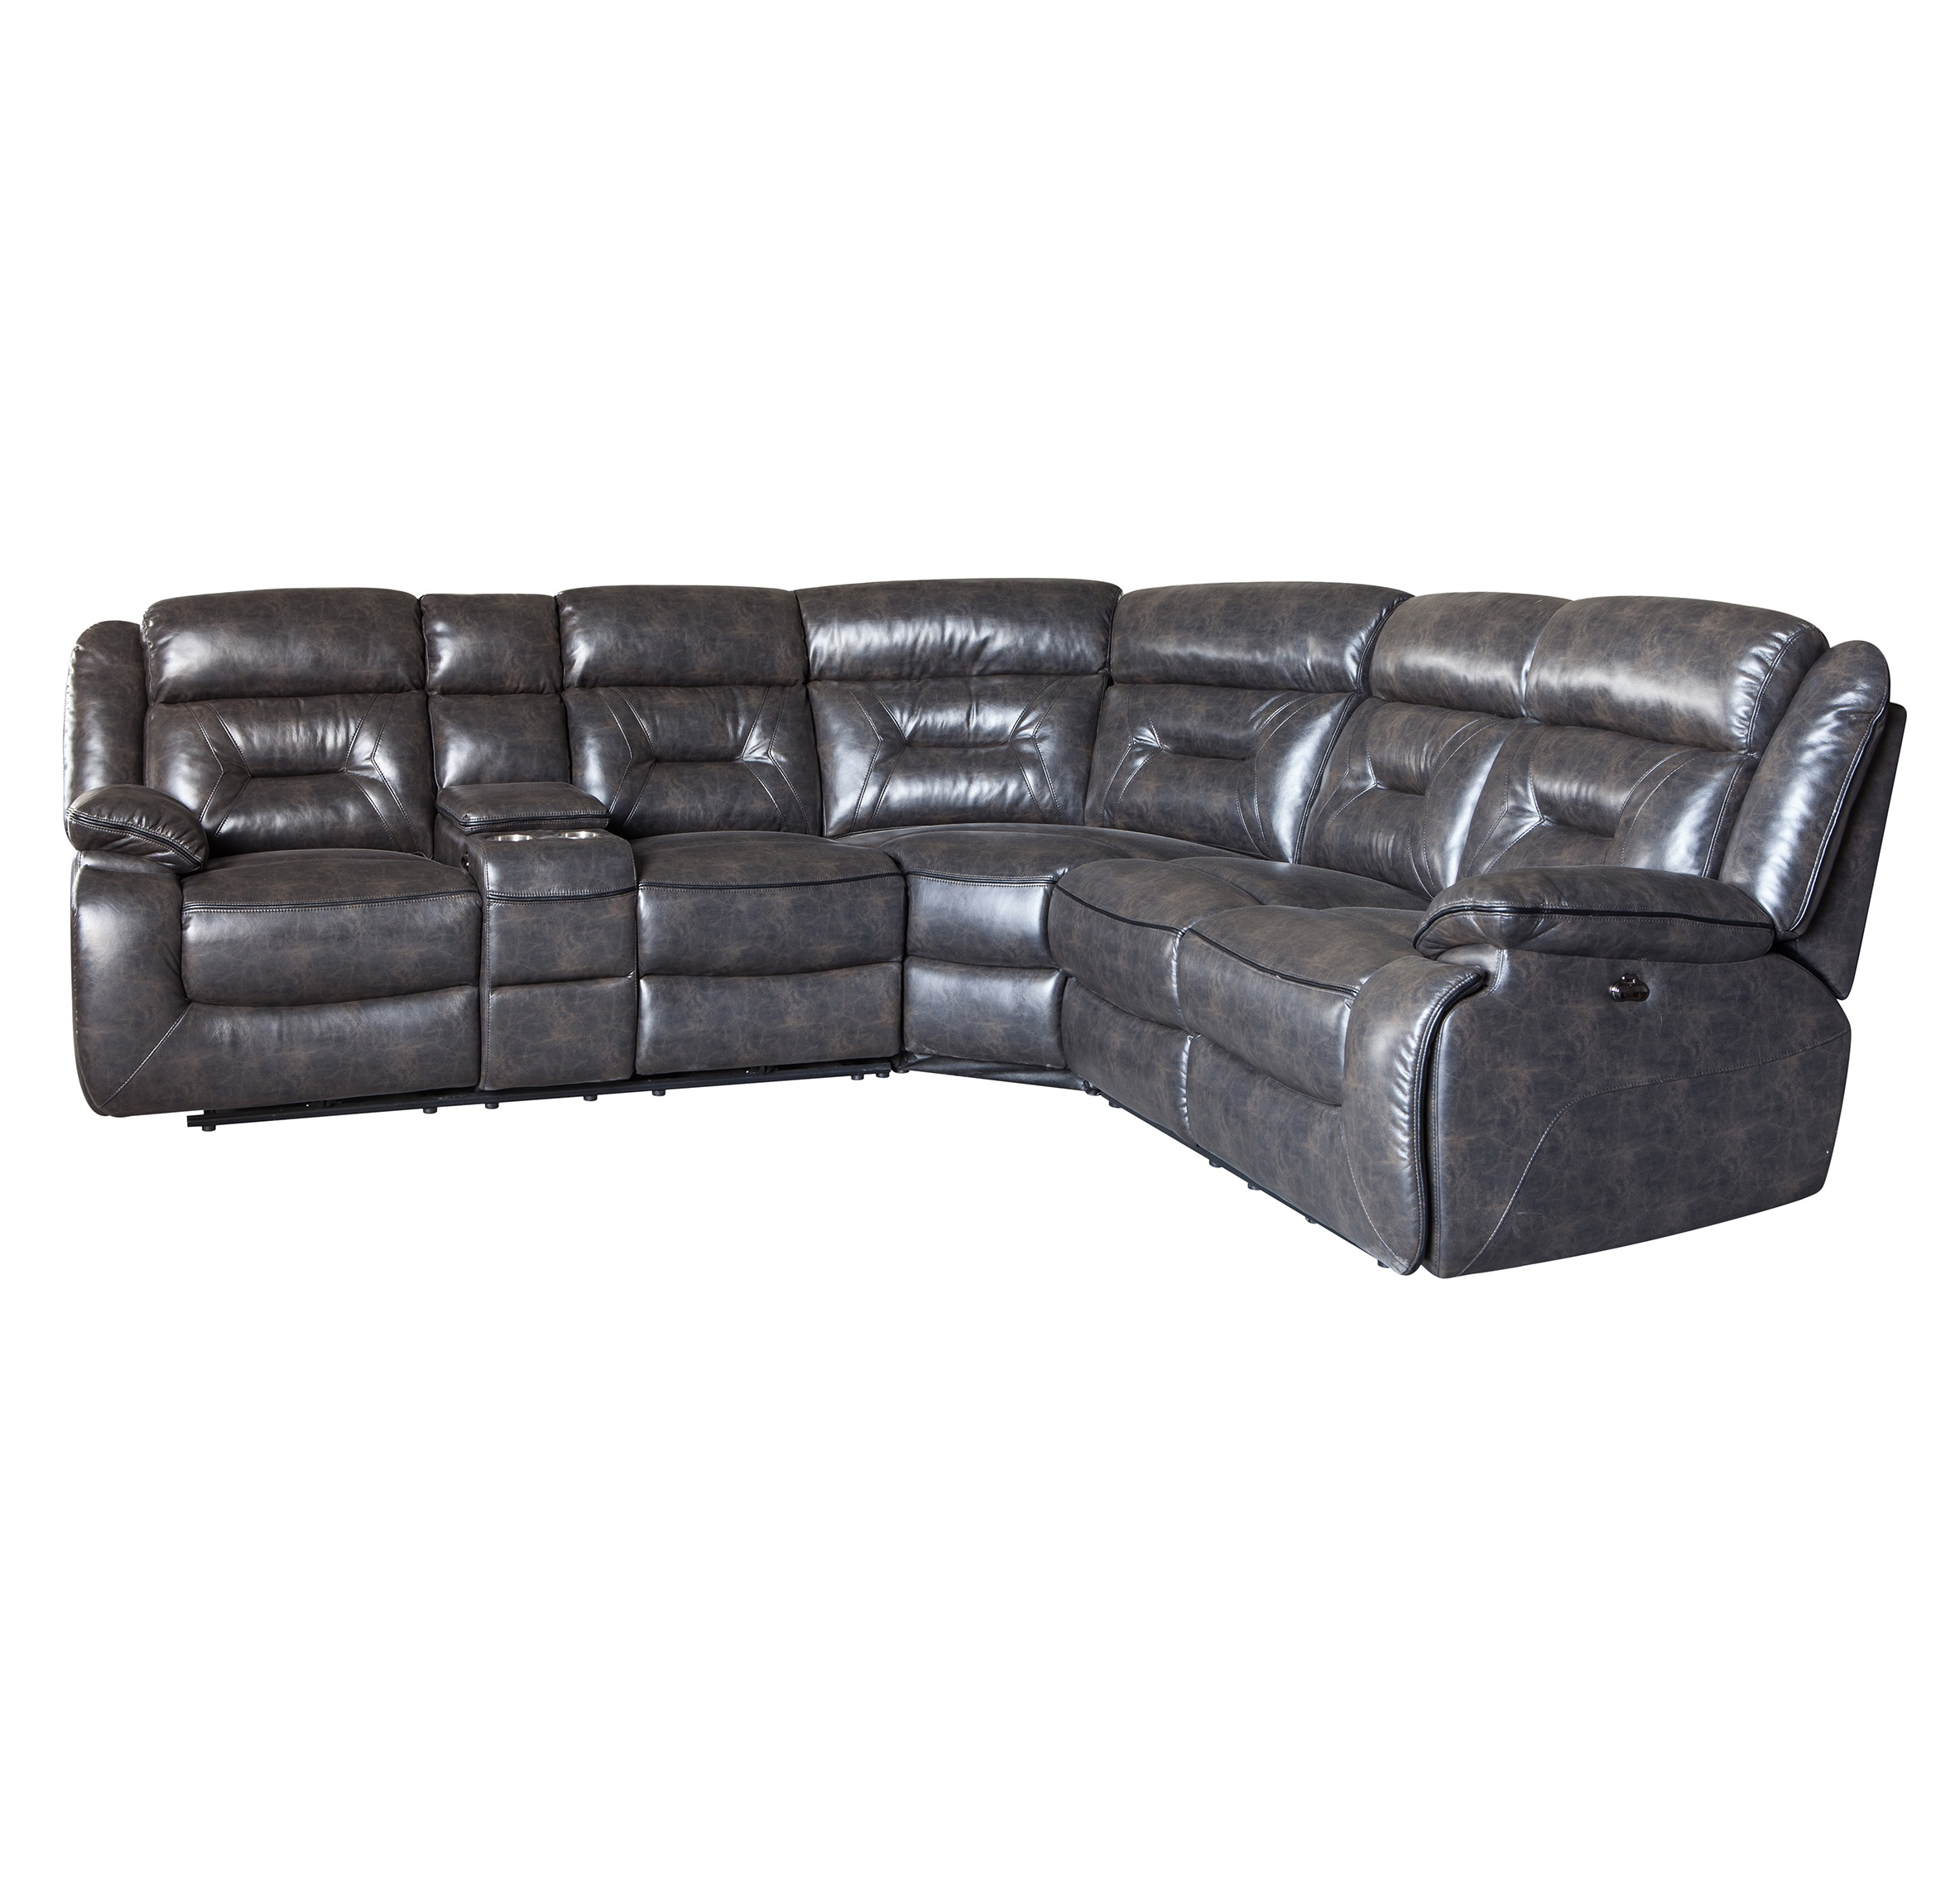 Modern black leather recliner sectional funiture sofa home living room